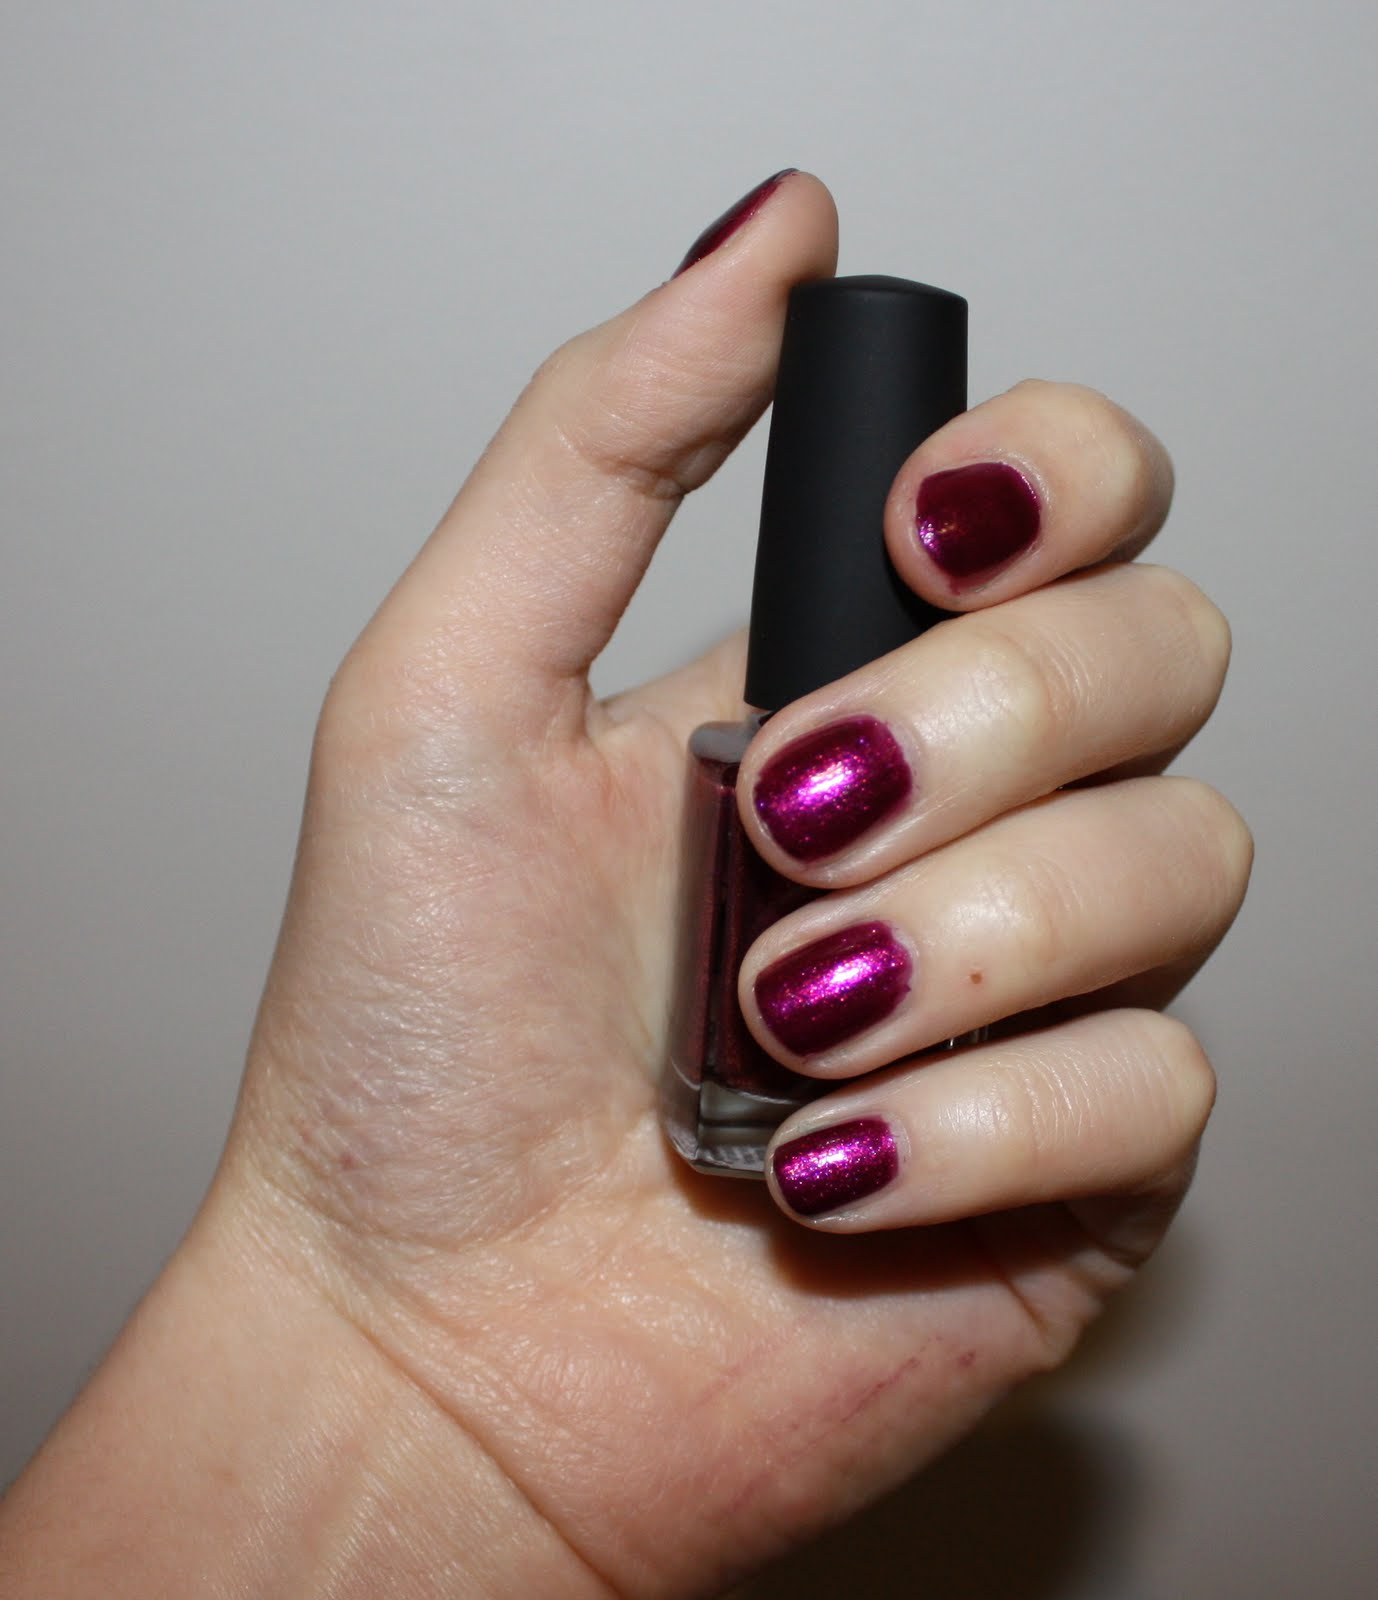 Bloom Elise Nail Polish Swatches - Shameless Fripperies